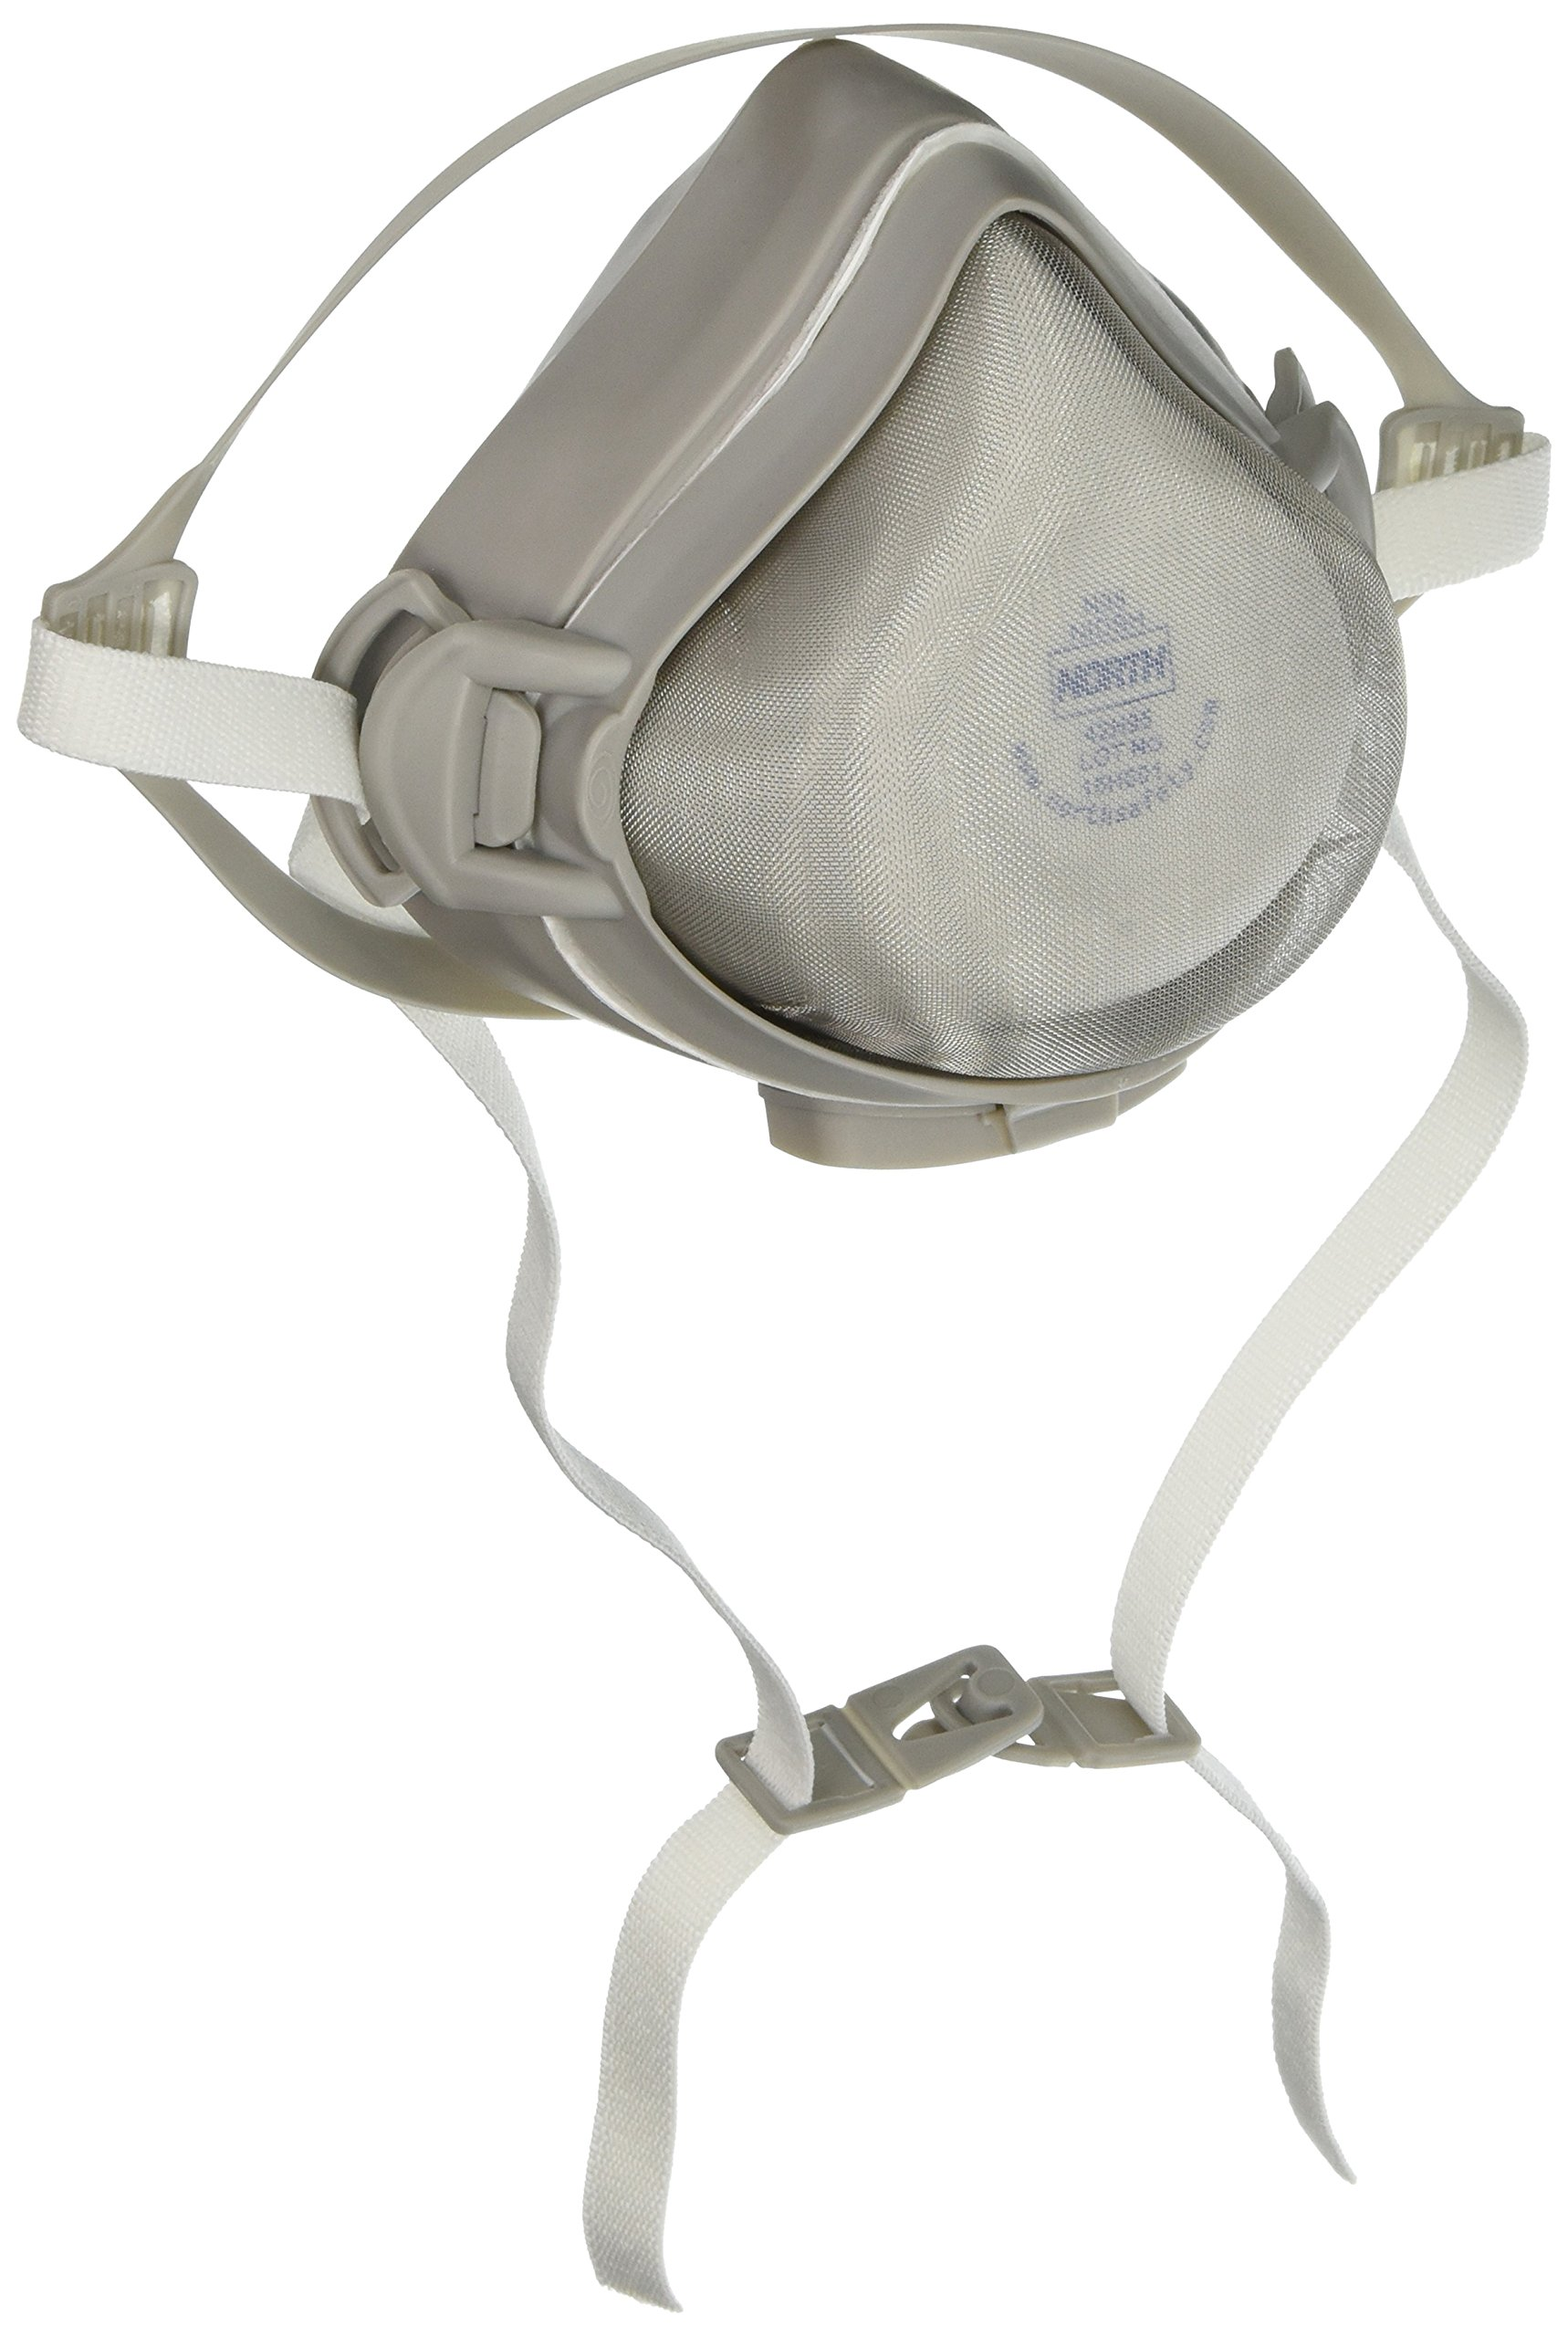 Respirator Assembly CFR-1 Half Mask for Welding Complete with One N95 Filter, Size Large